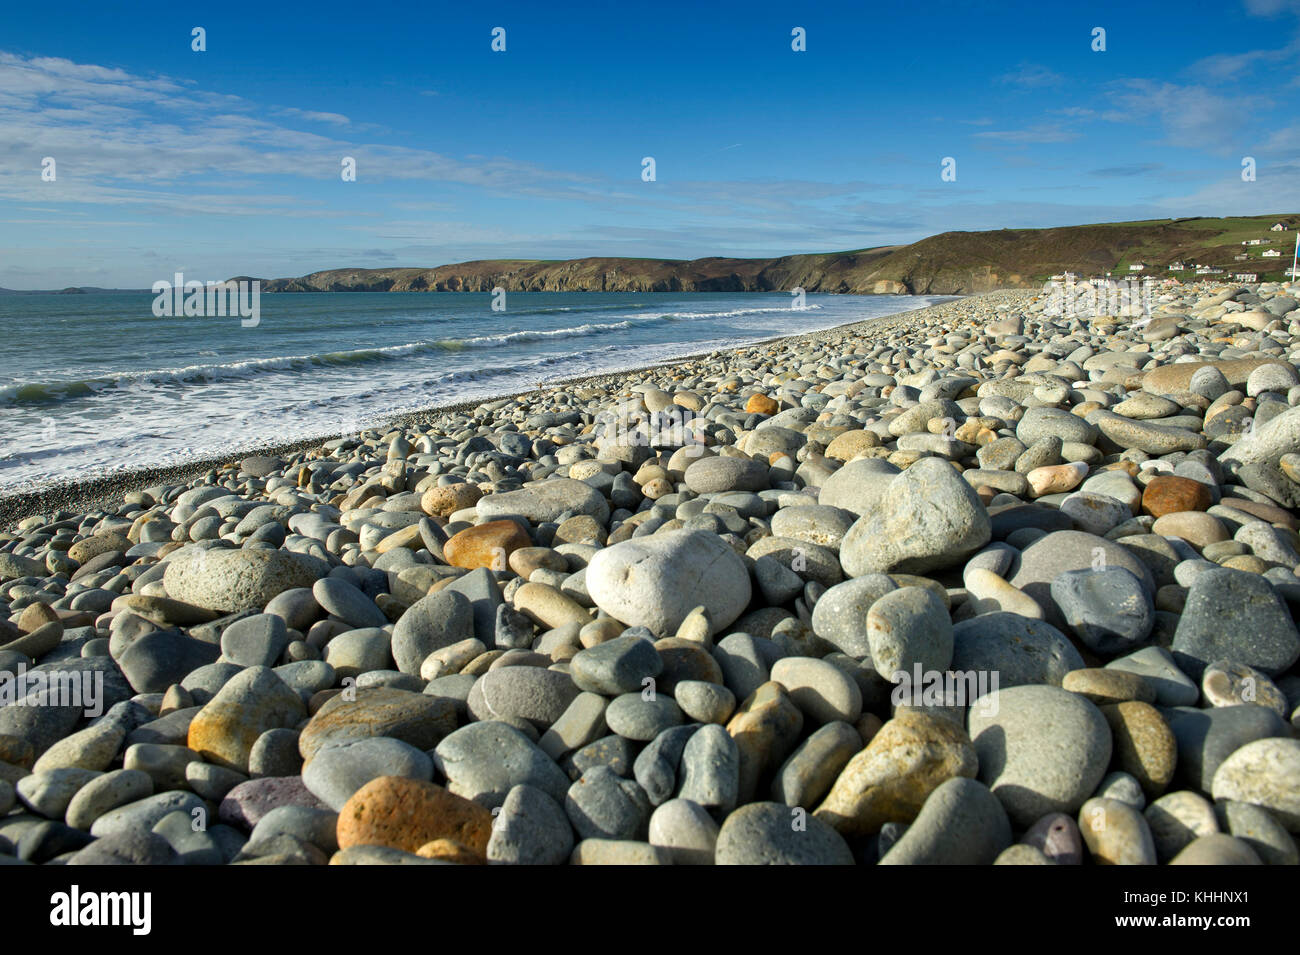 Newgale beach, West Wales, Pembrokeshire, United Kingdom Stock Photo